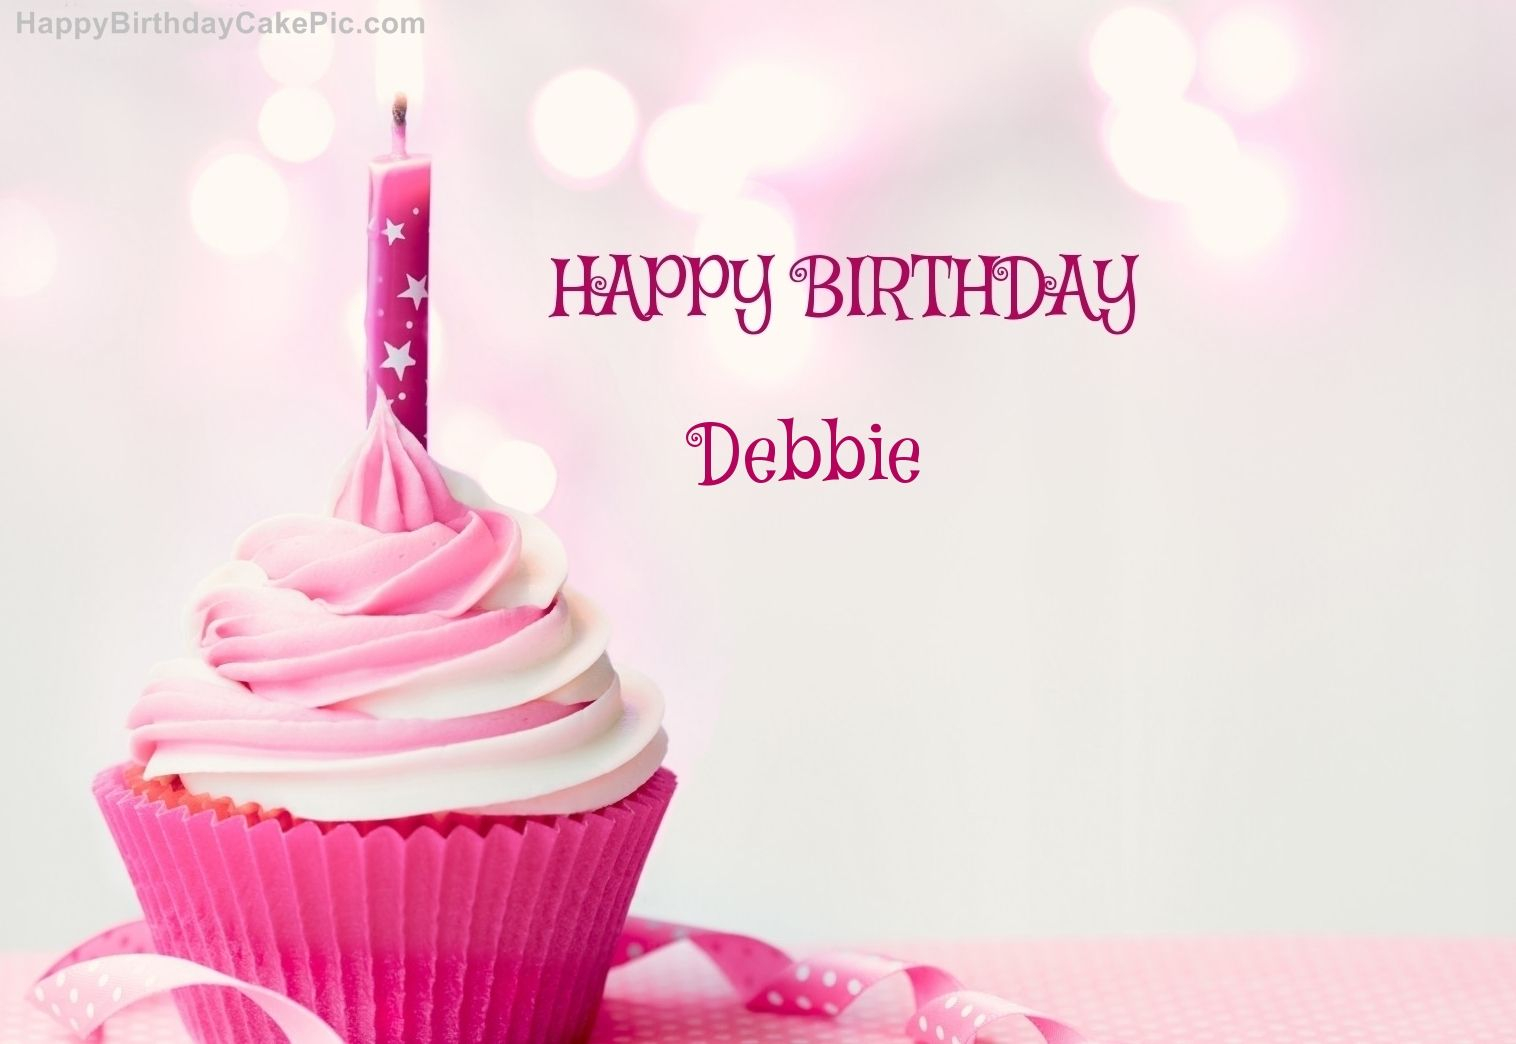 Happy Birthday Debbie Cake Pin Debbie Wolfe On Happy Birthday Pinterest Happy Birthday